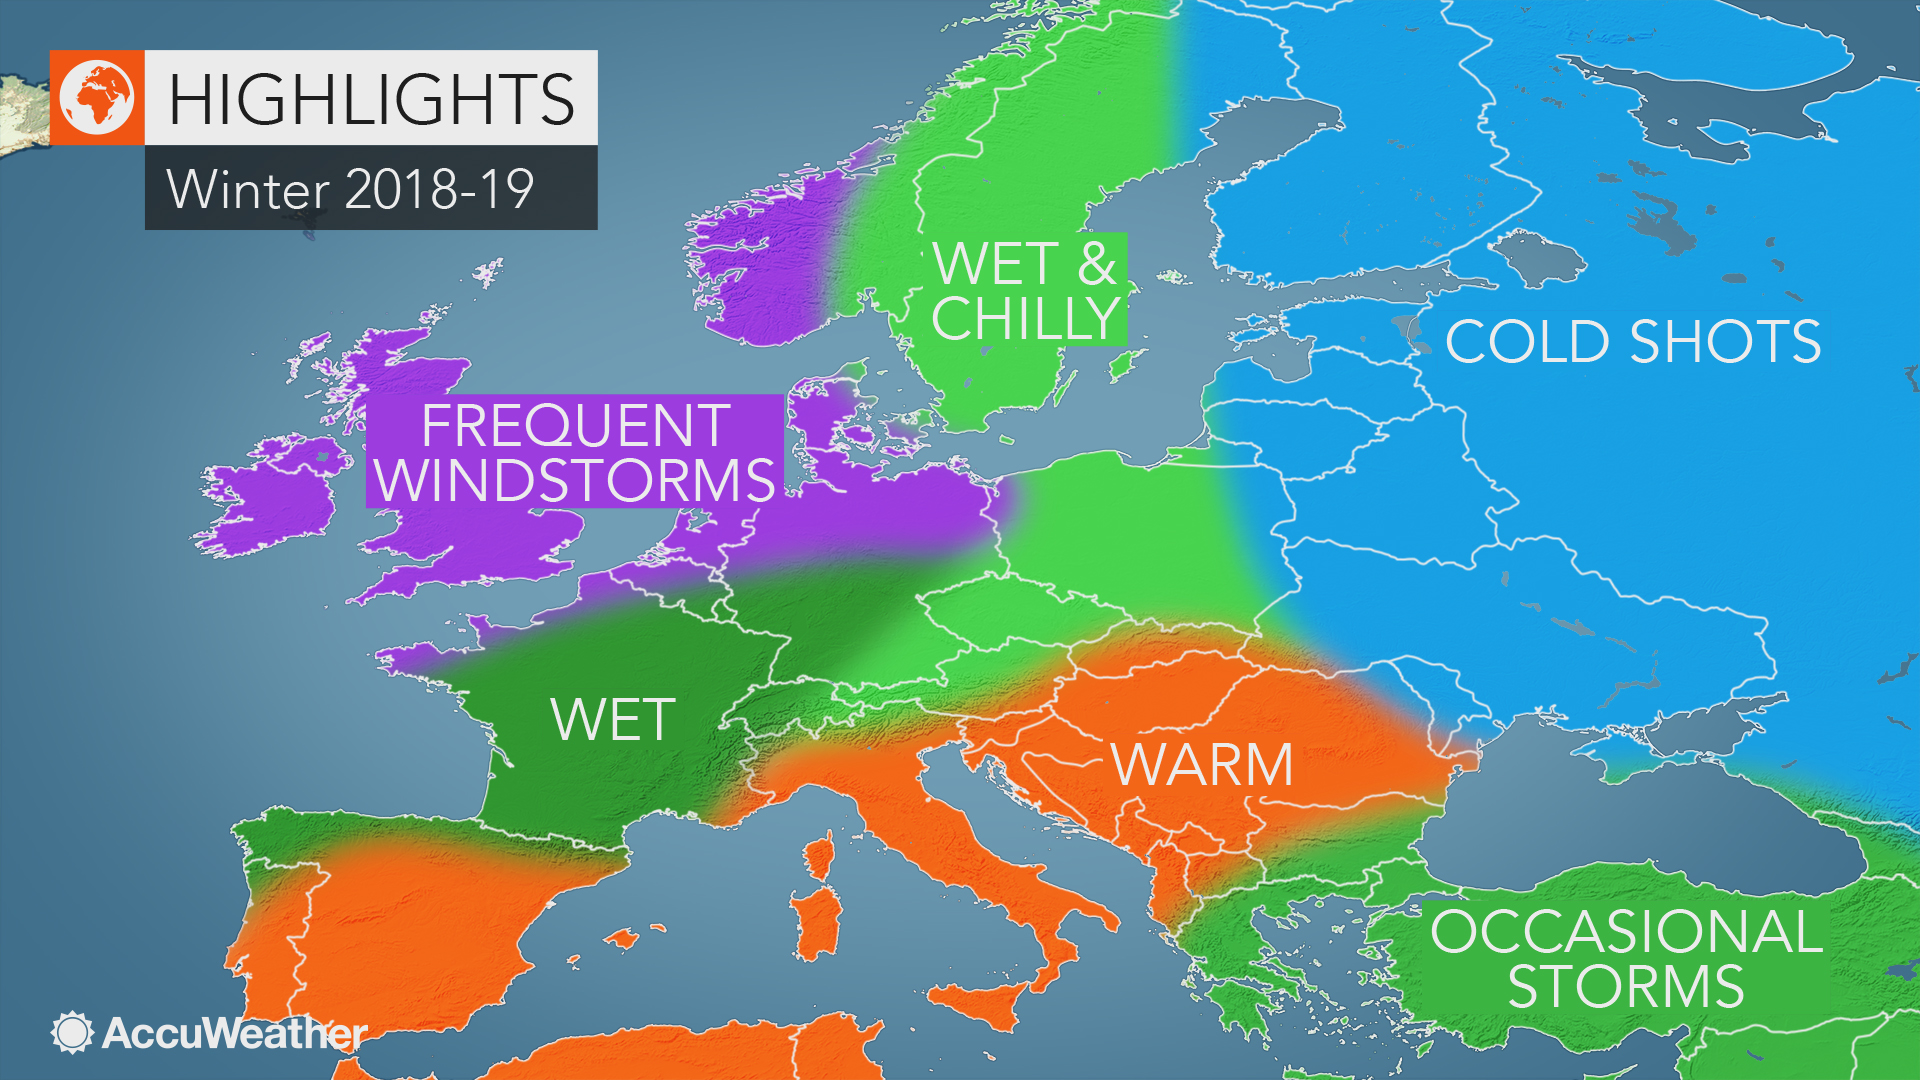 accuweather 39 s europe winter forecast for the 2018 2019. Black Bedroom Furniture Sets. Home Design Ideas